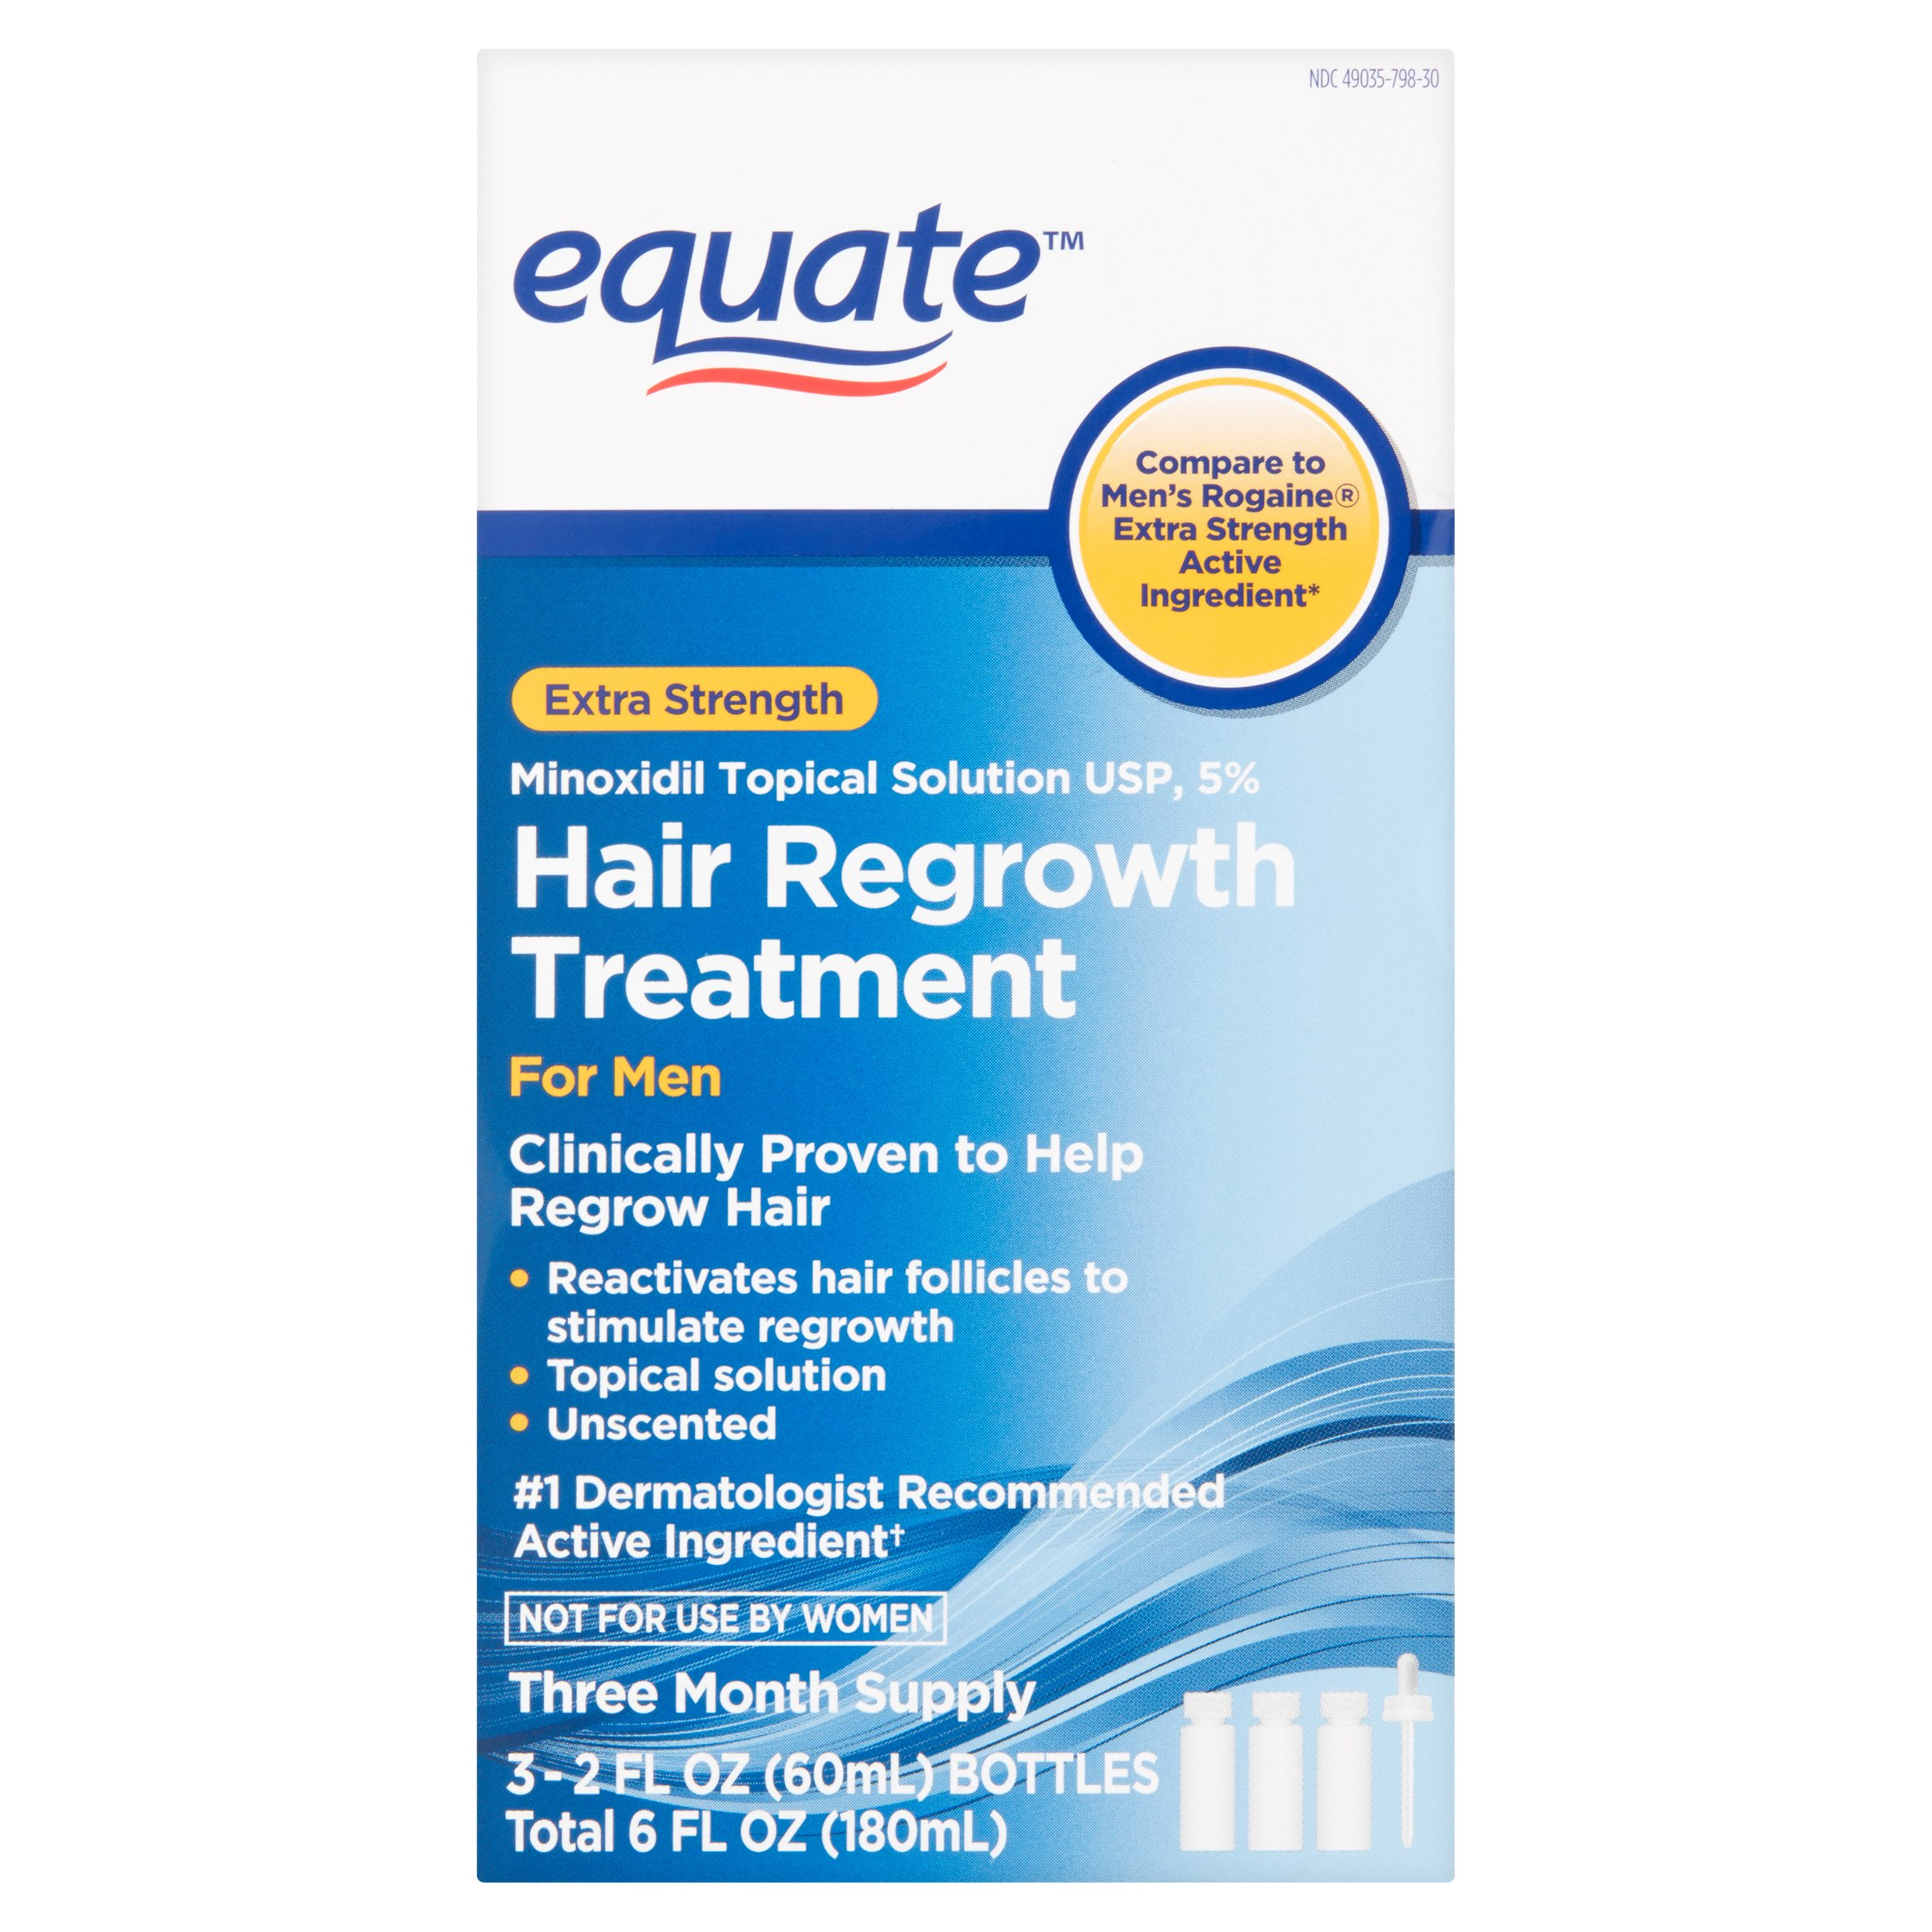 Equate Extra Strength Minoxidil Hair Regrowth Treatment for Men, 2 Oz, 3 Ct